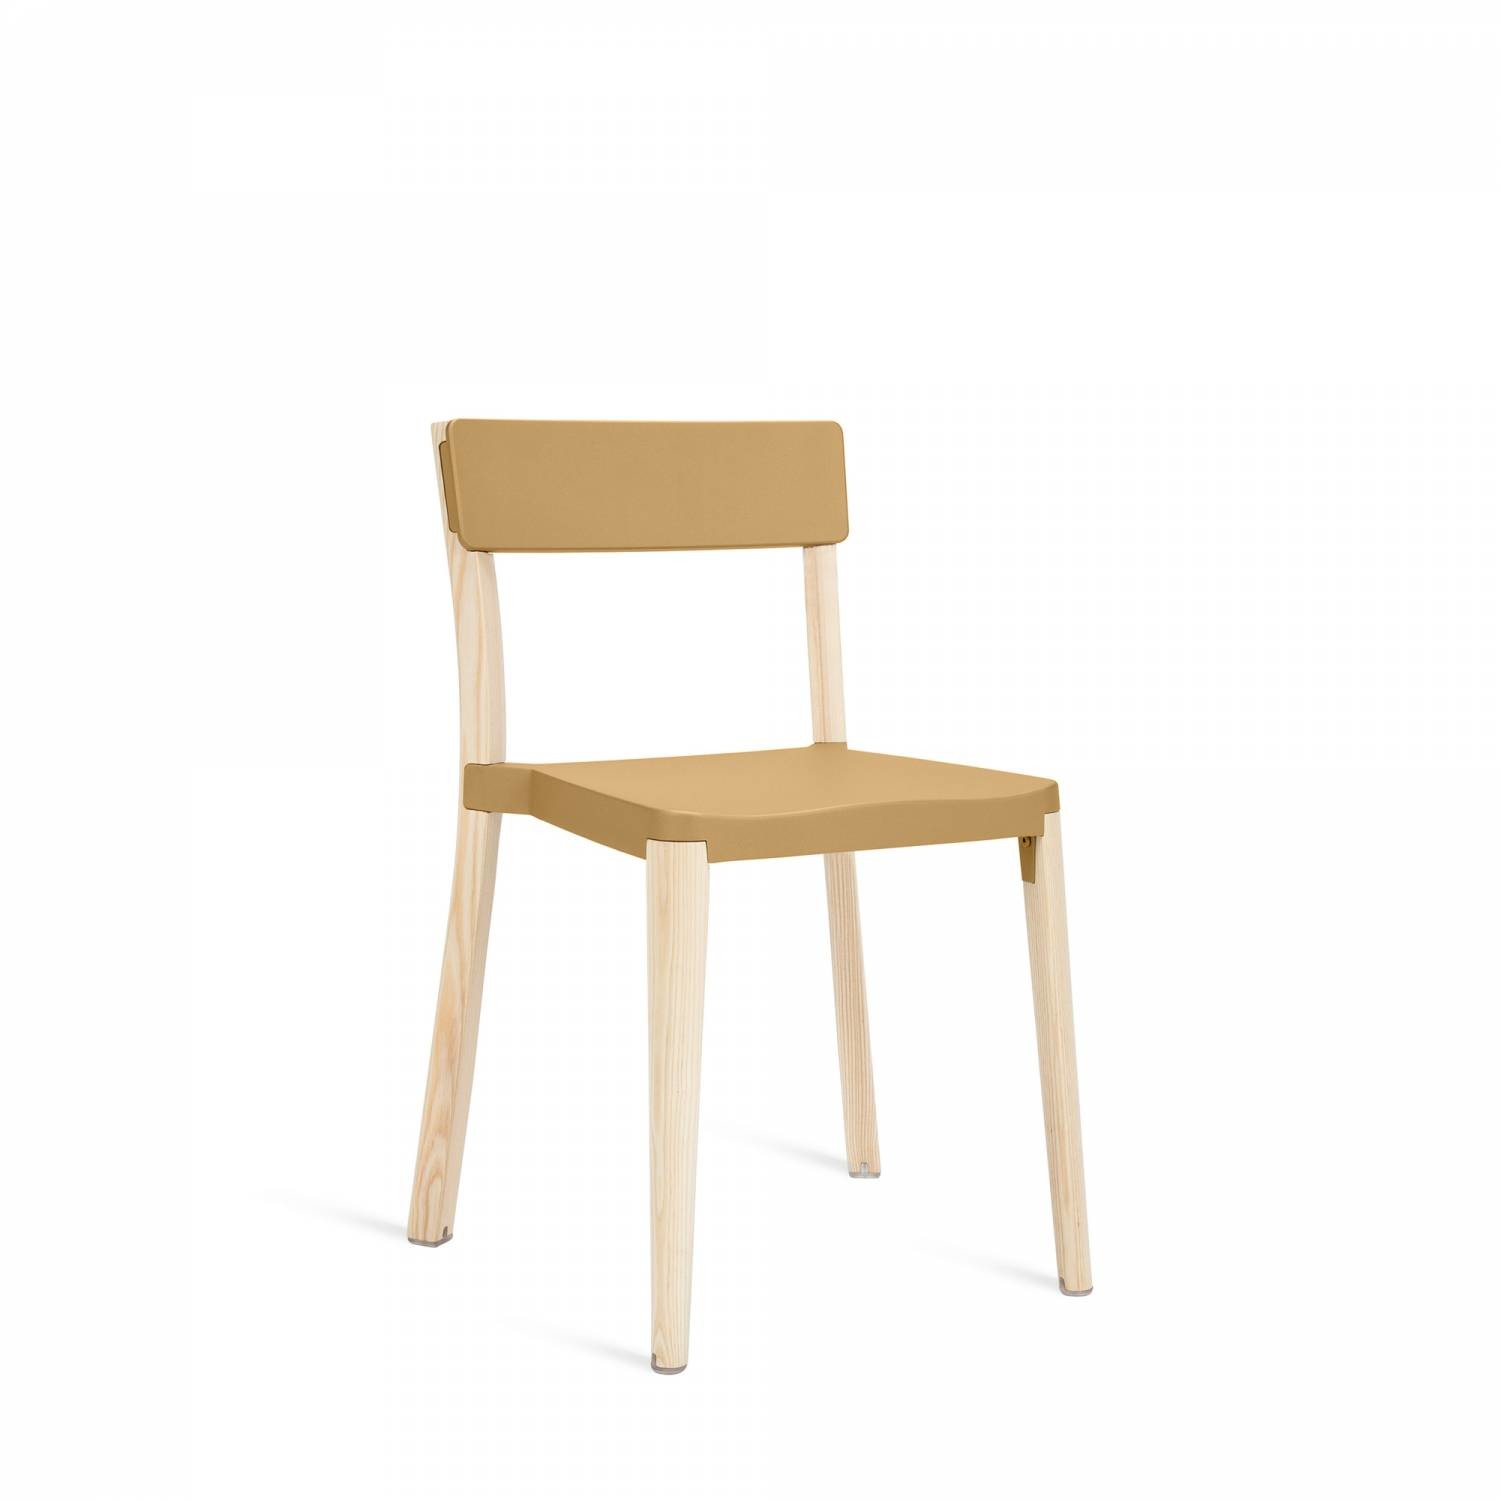 Lancaster Stacking Chair Sand, Light Wood Base, Without Seat Pad, Without Back Pad